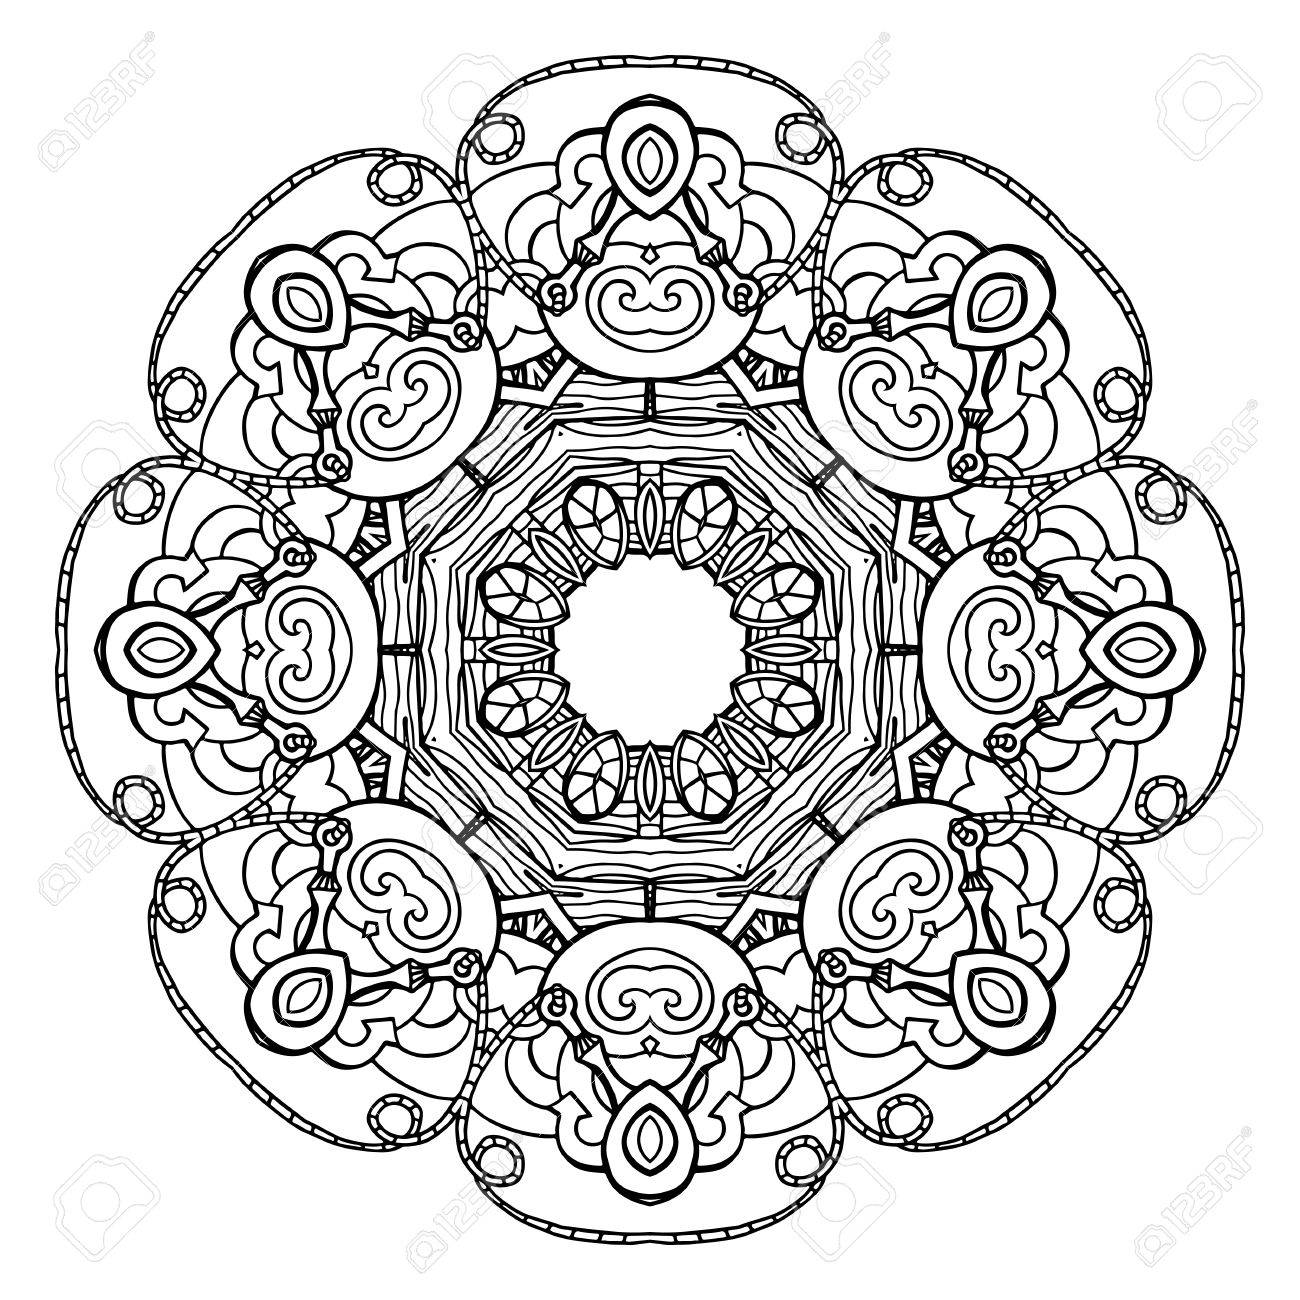 Template round doodle pattern for greeting cards coloring books template round doodle pattern for greeting cards coloring books for adults and your creativity stock m4hsunfo